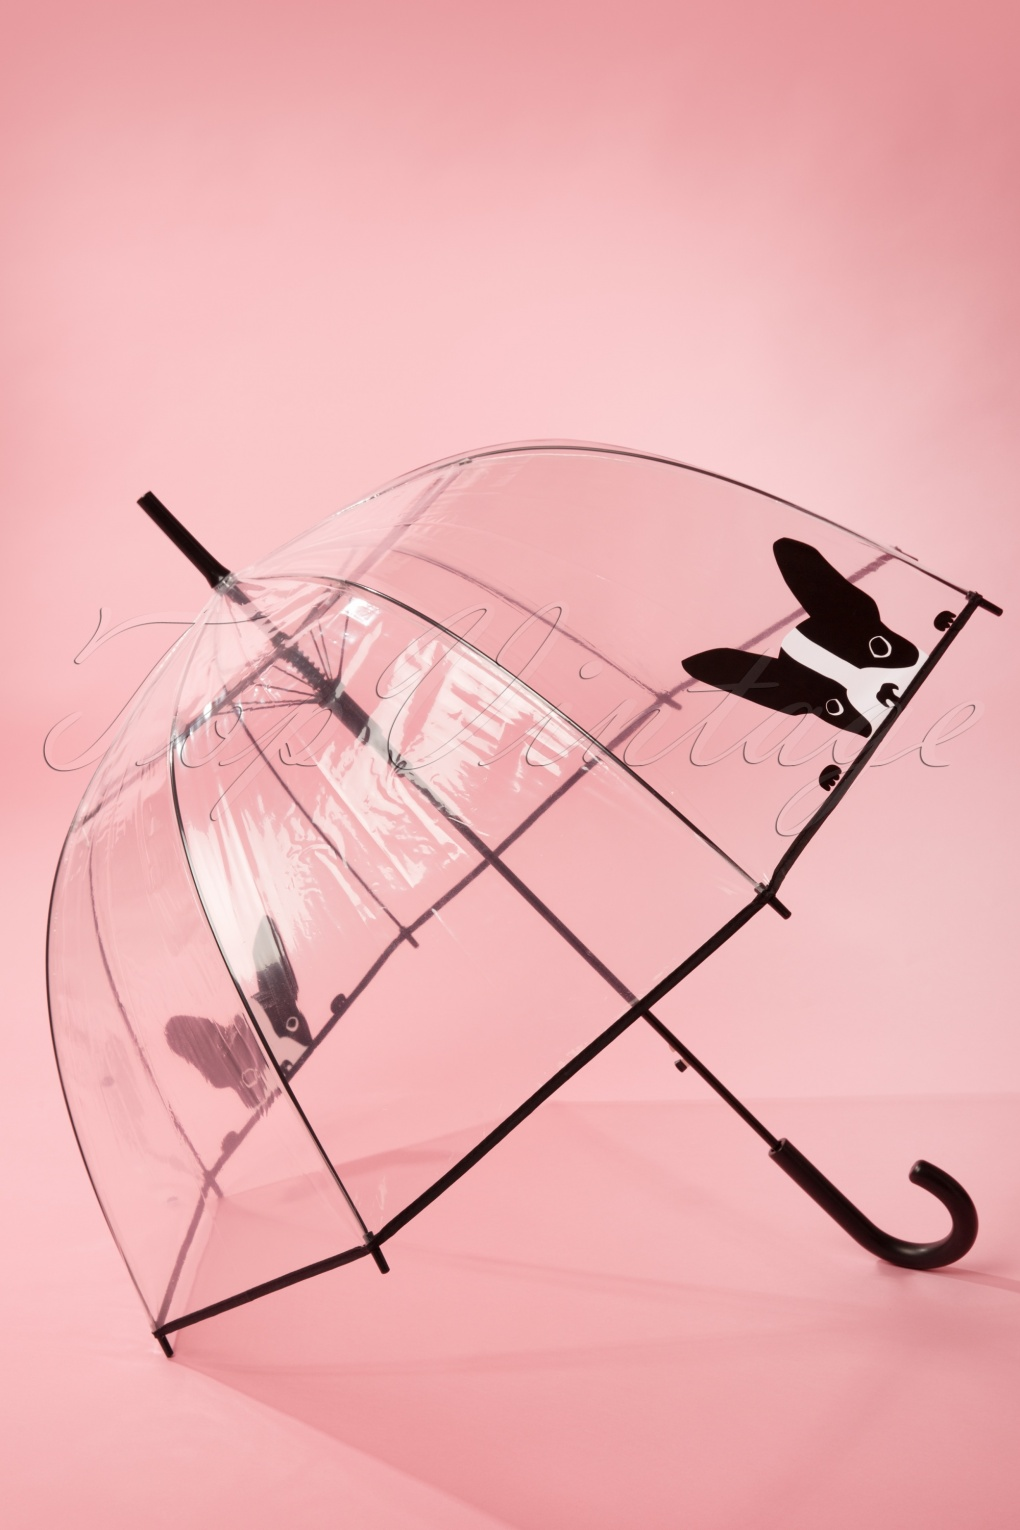 Vintage Style Parasols and Umbrellas 50s Its Raining Dogs Transparent Dome Umbrella £15.79 AT vintagedancer.com